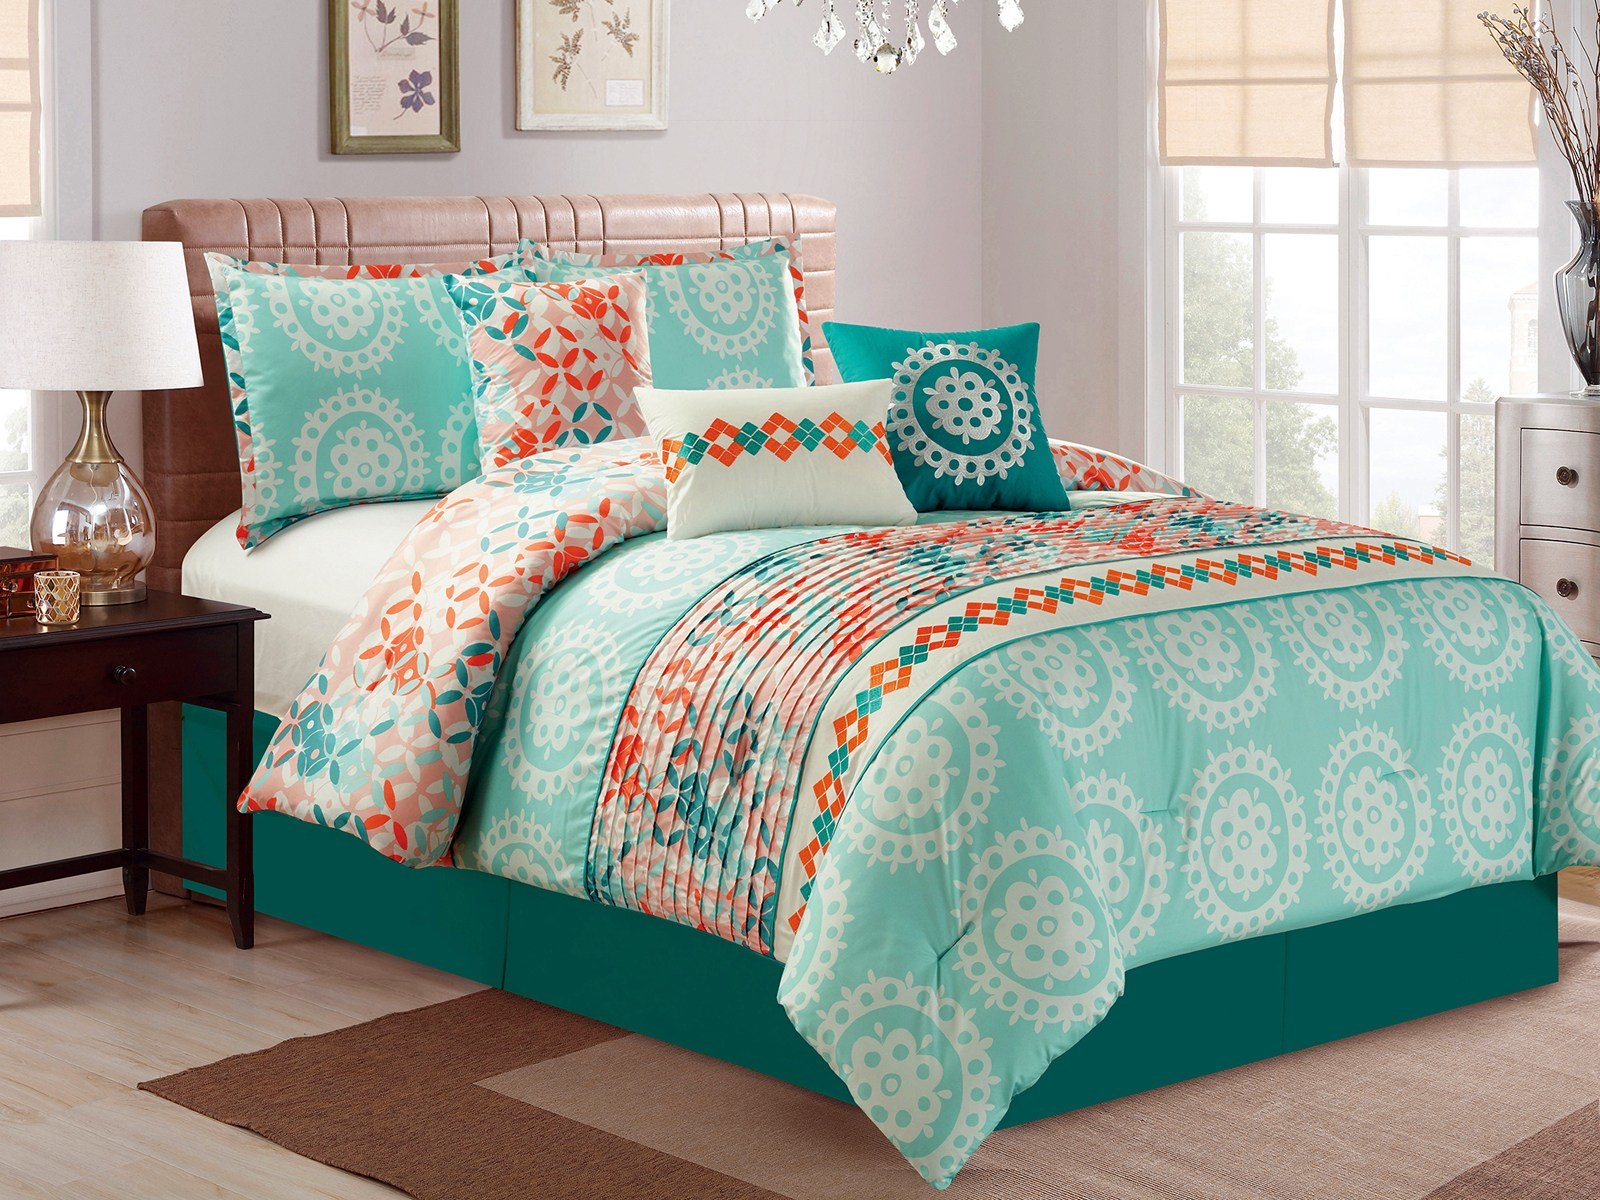 Best 11P Helm Diamond Leaf Pleated Comforter Curtain Set Green Teal Orange White King Ebay With Pictures